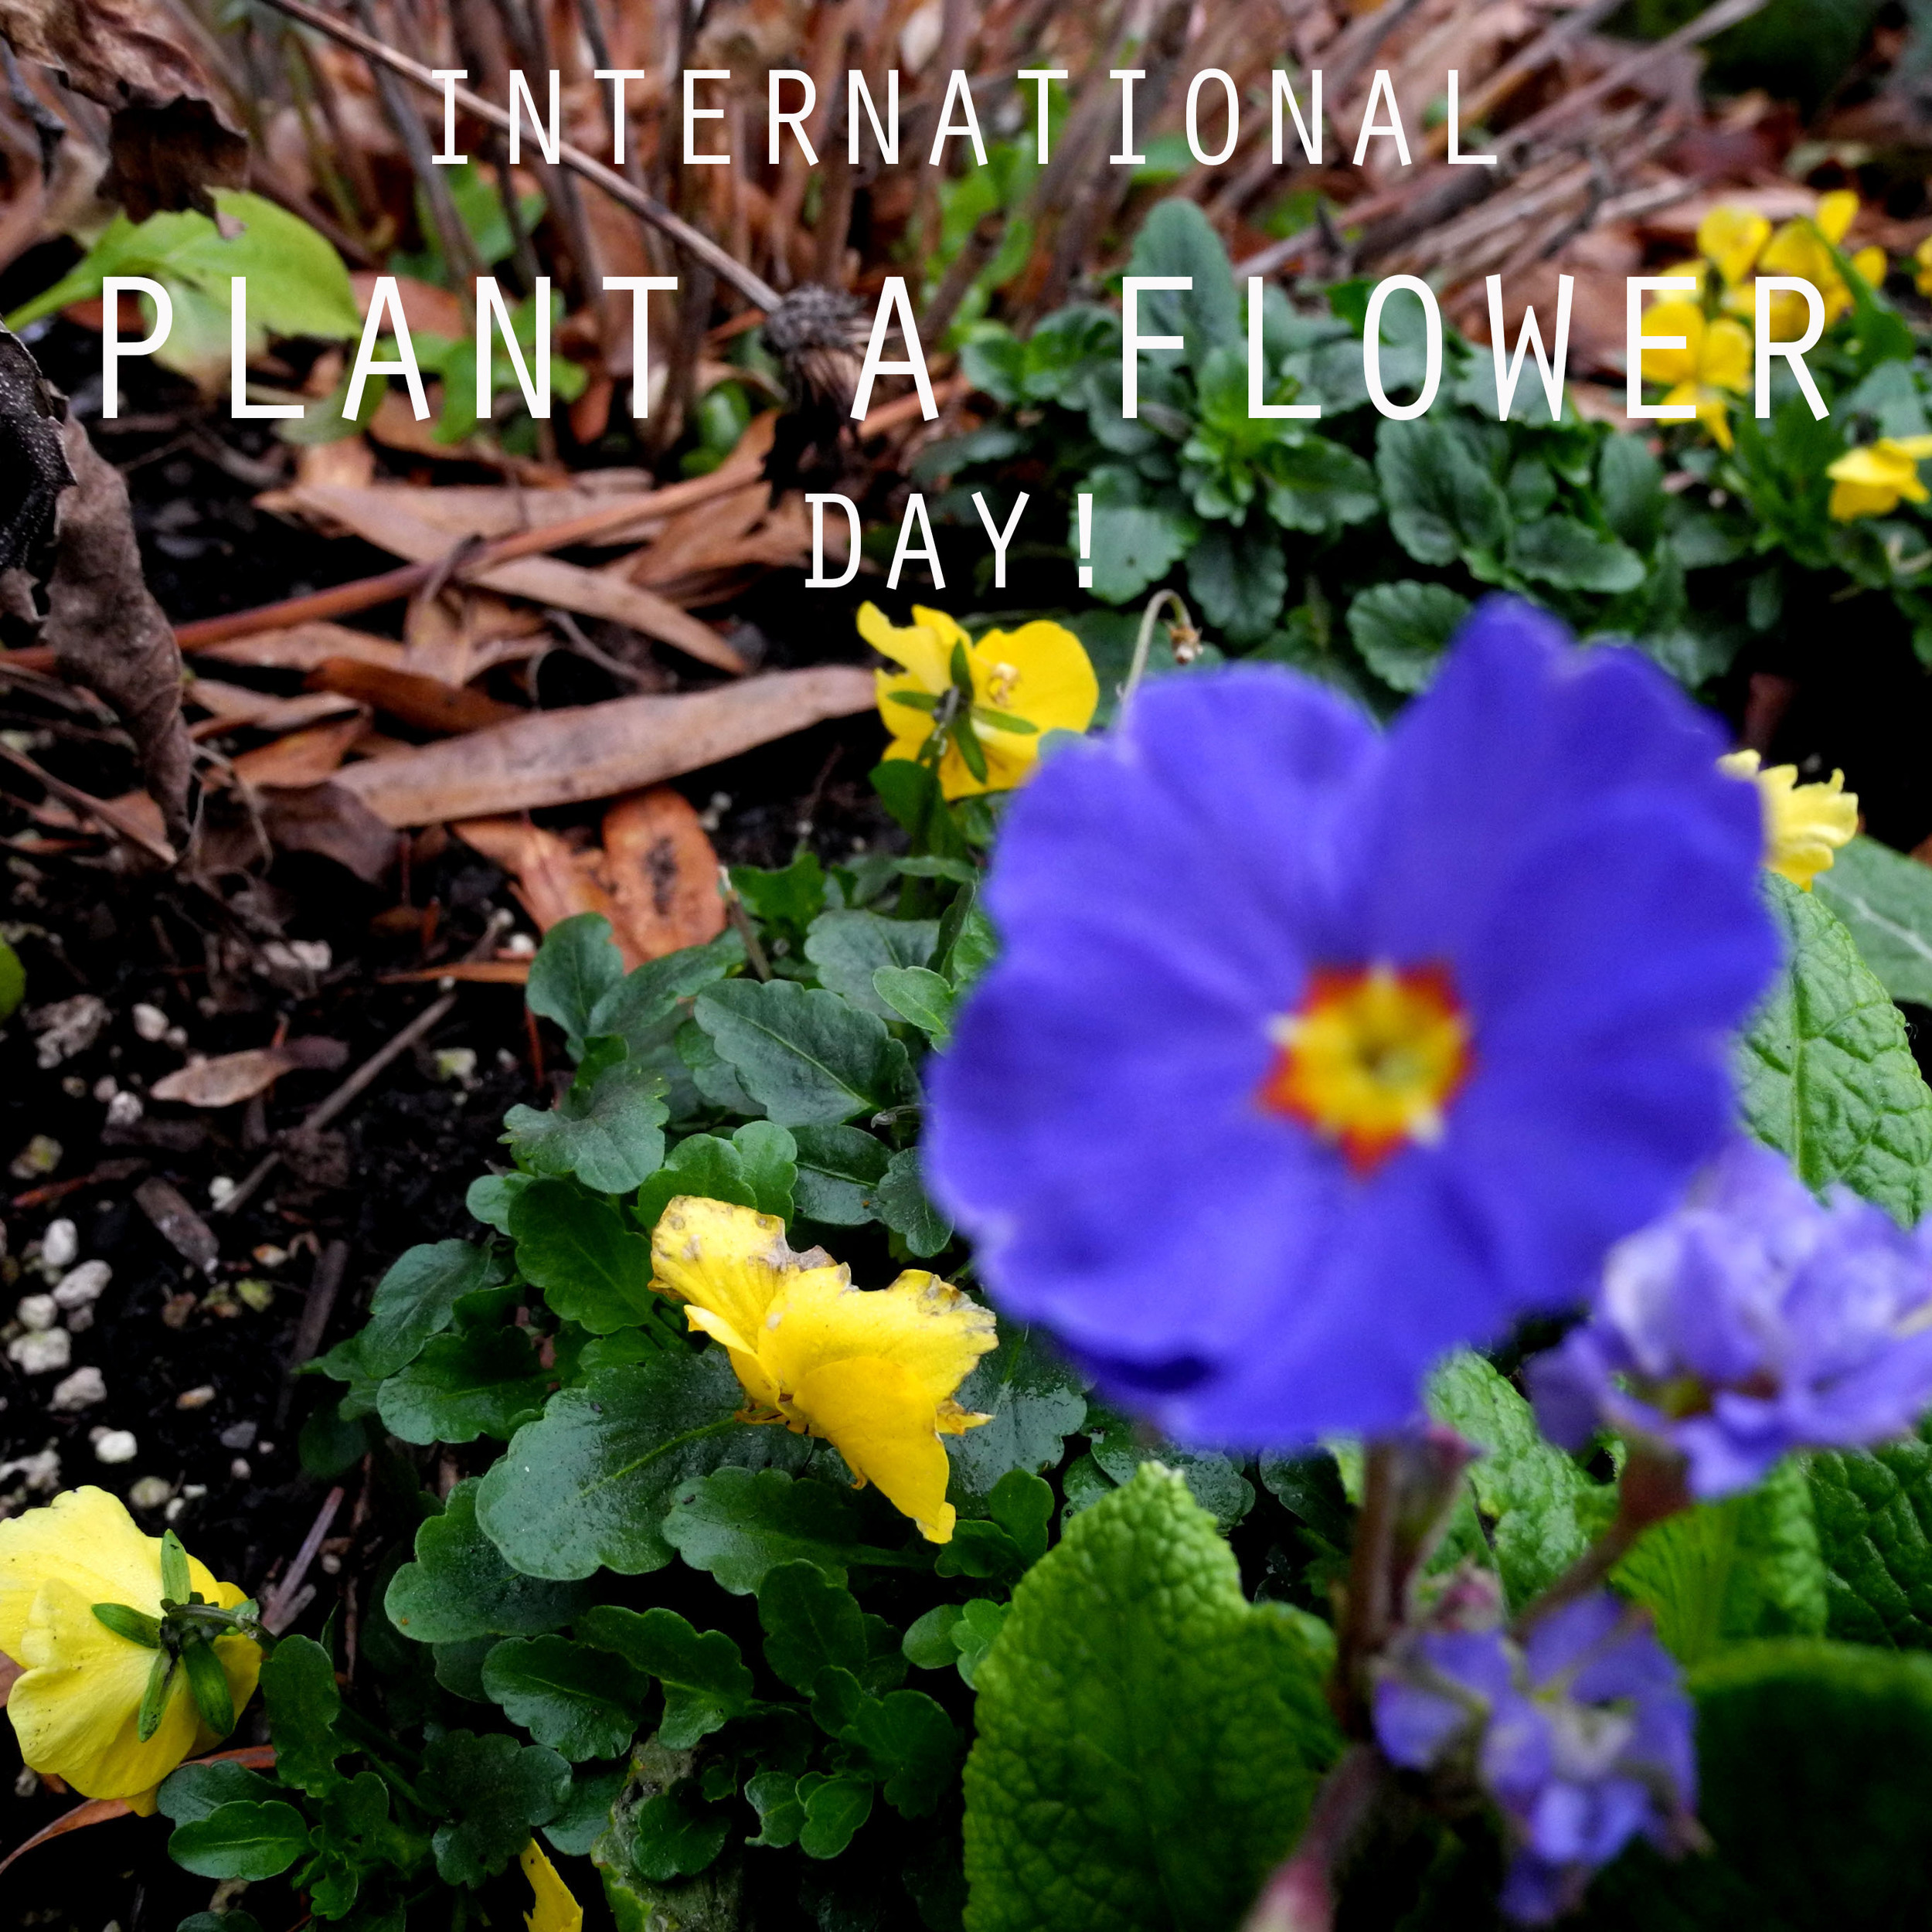 Promotional advertising campaign via Envision Magazine's Instagram. The campaign raises awareness for International Plant a Flower Day.  Photography and design by Madison D. Cameron